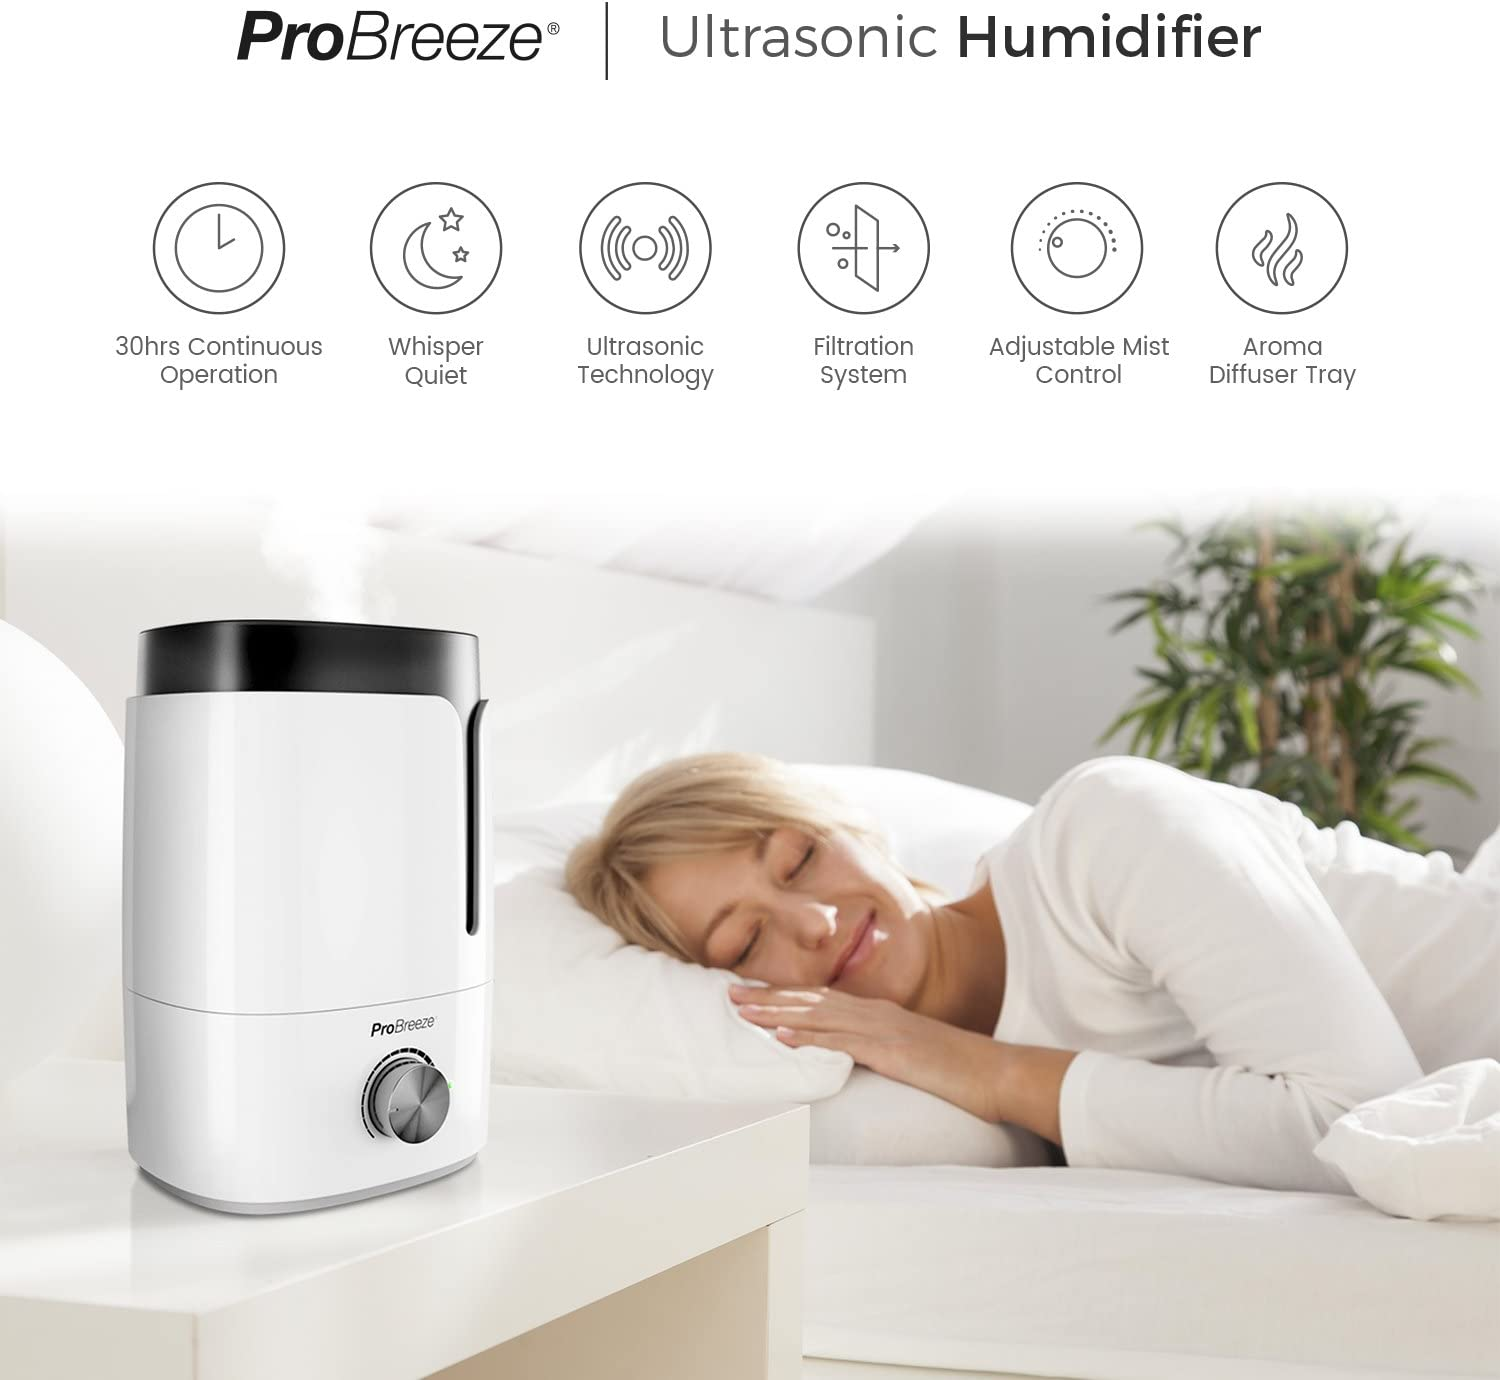 Pro Breeze Premium 3.5L Ultrasonic Cool Mist Humidifier Large Water Tank Capacity with Built in Aroma Diffuser Tray & Auto Shut Off